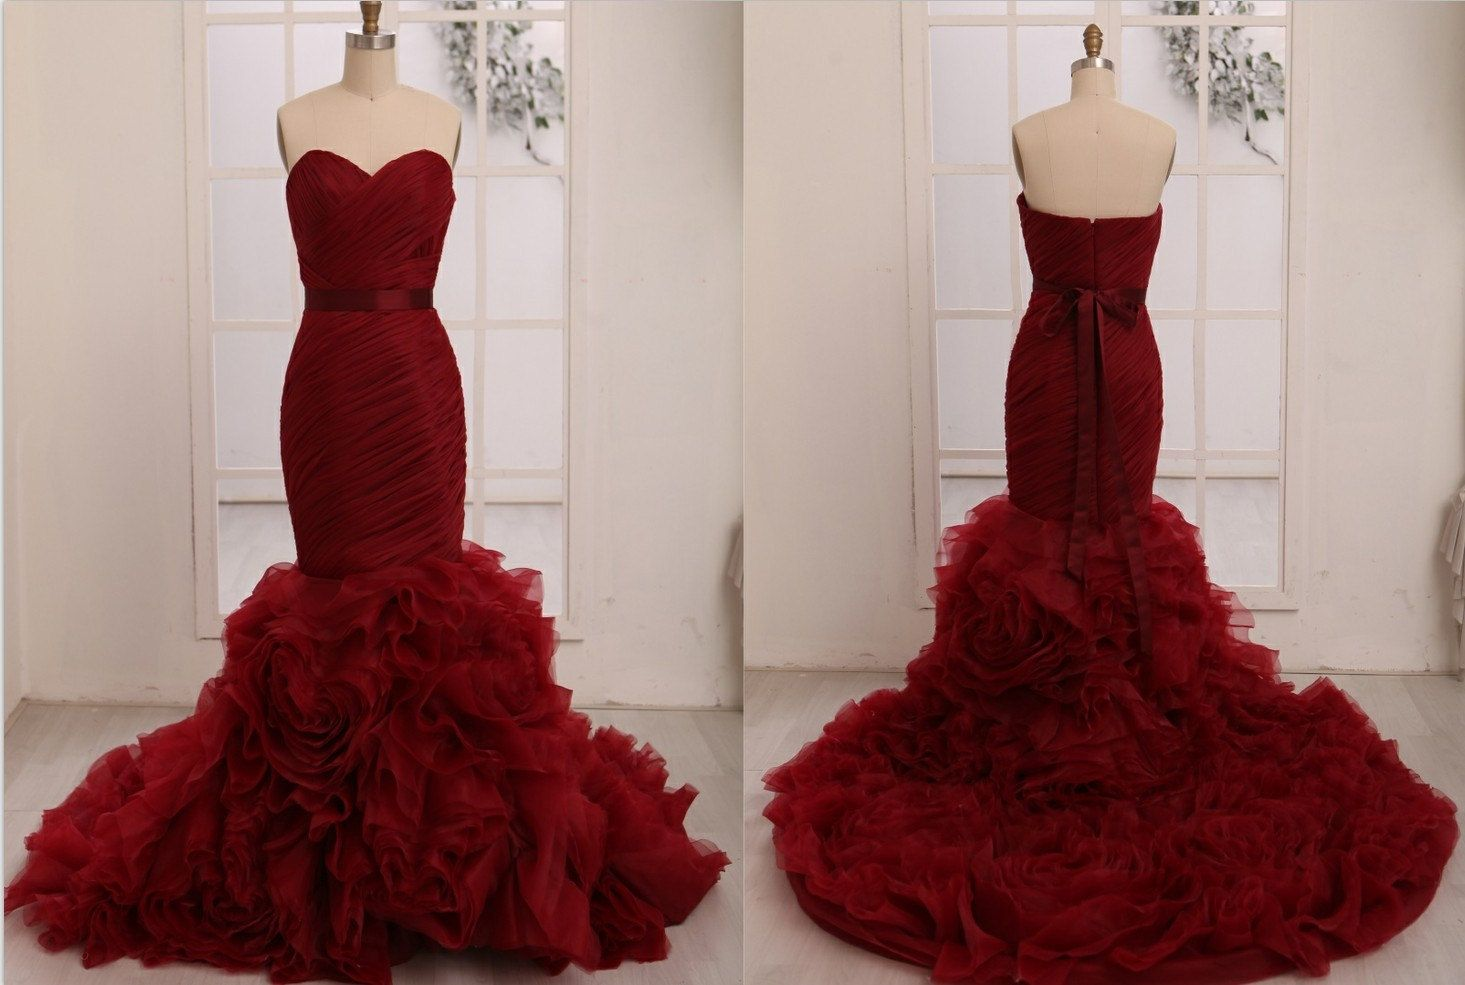 Vera Wang Inspried Wine Red Burgundy Organza Mermaid By